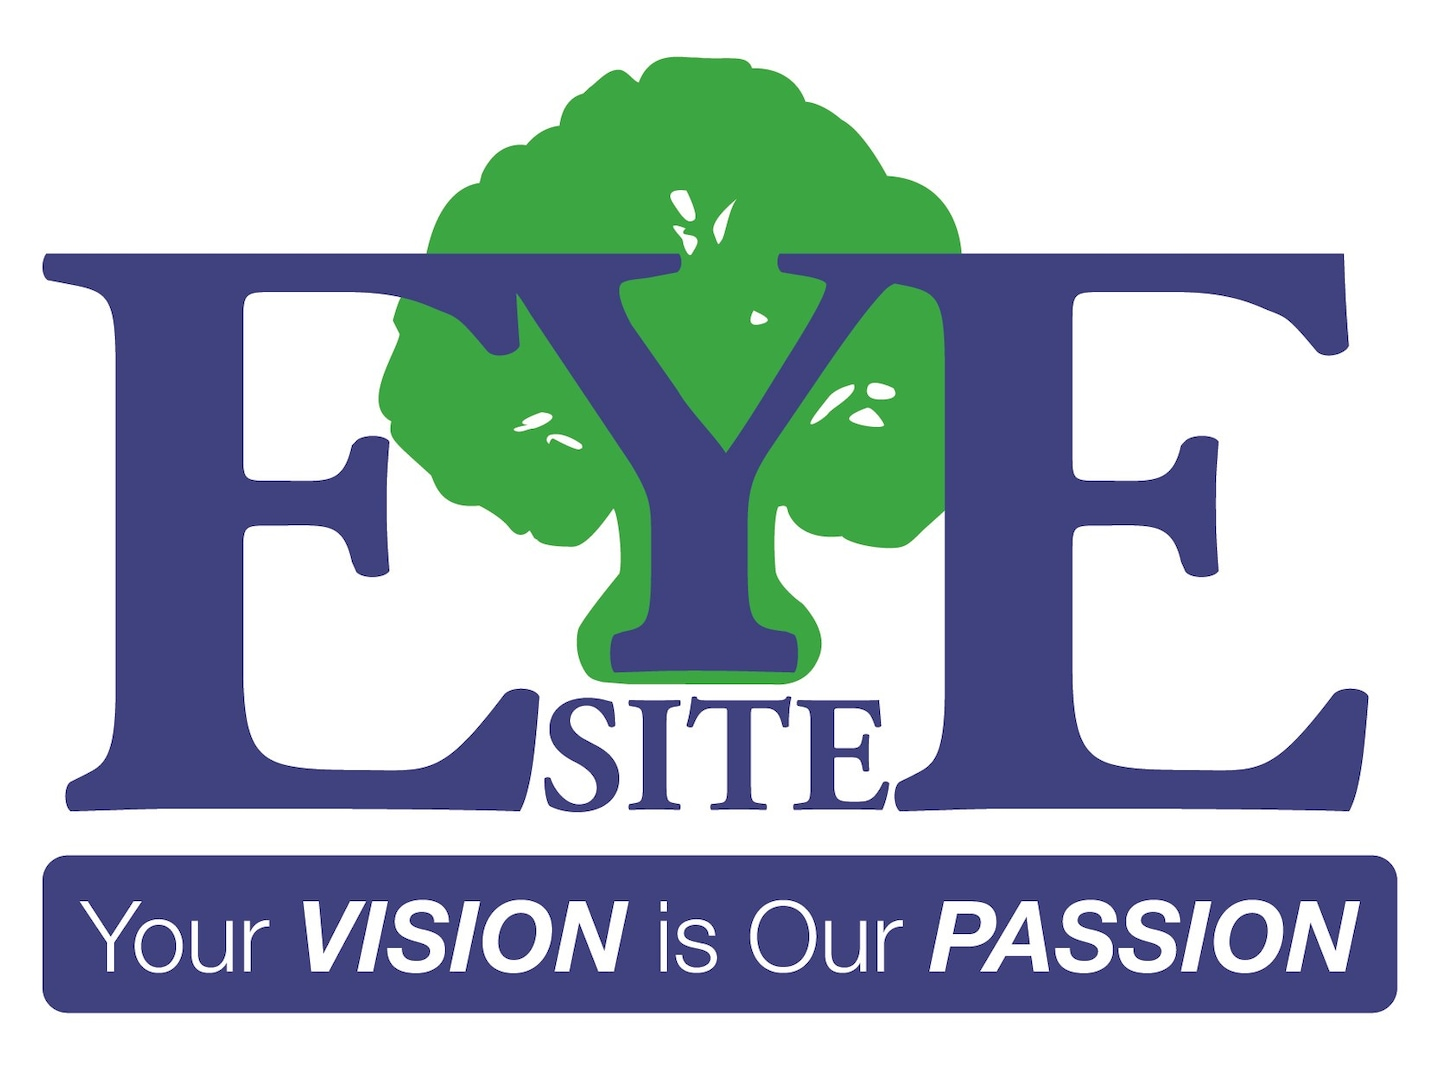 Eye Site of Tampa Bay